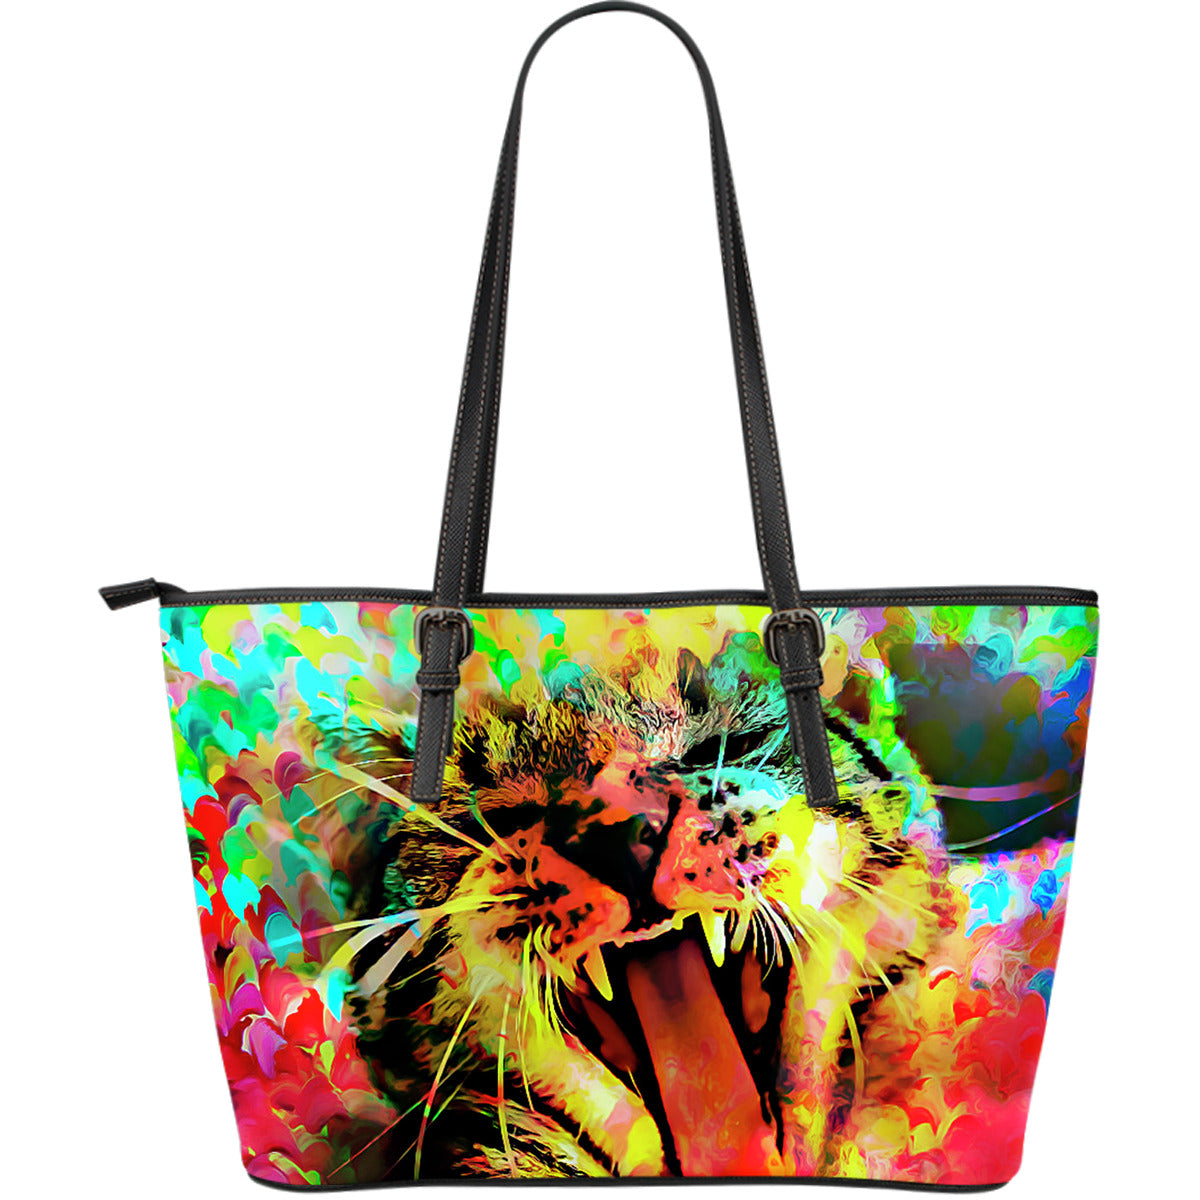 Wild Cat Leather Tote Bag